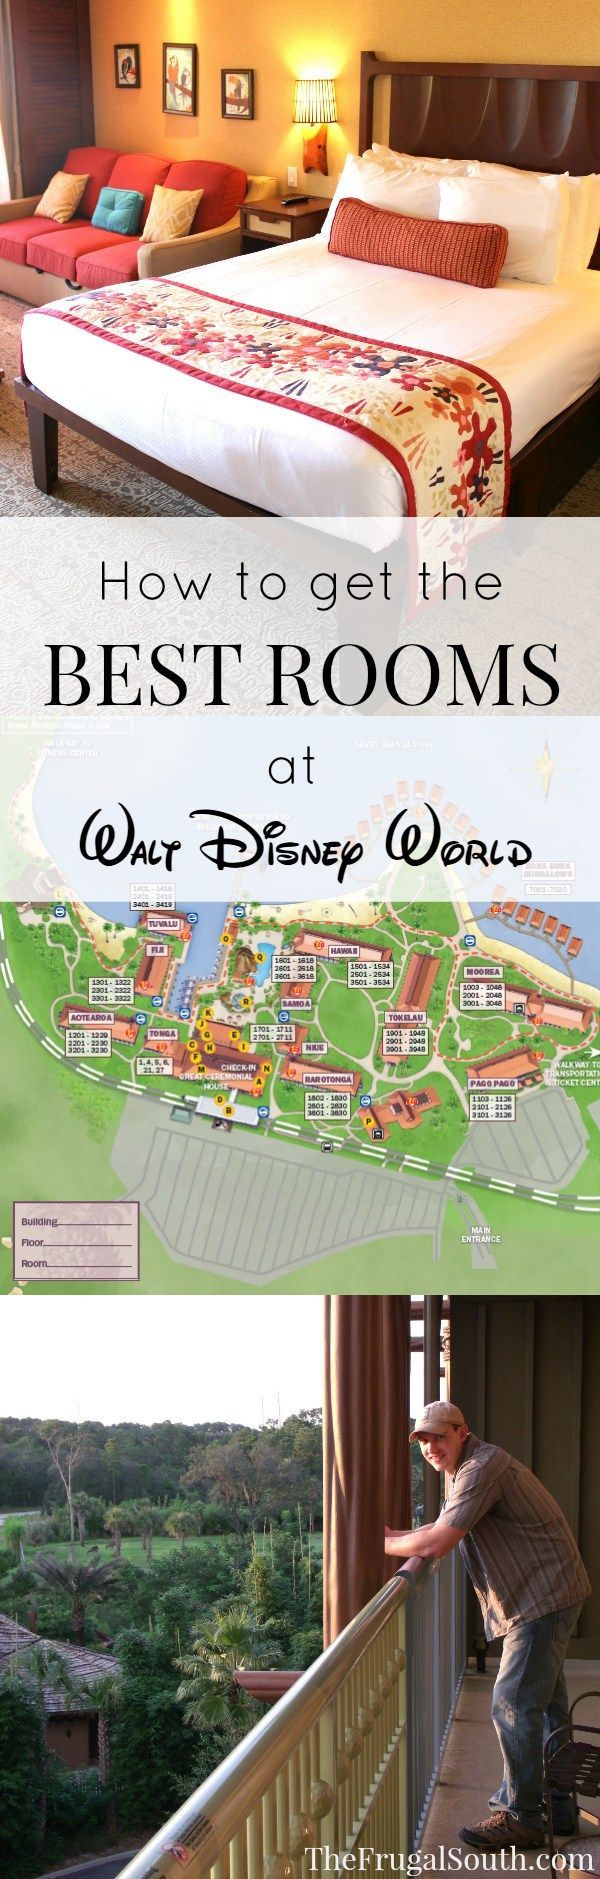 Tips & tricks for getting the best resort hotel rooms at Disney World, including how to make effective room requests and how to research and choose the right room for your travel party.